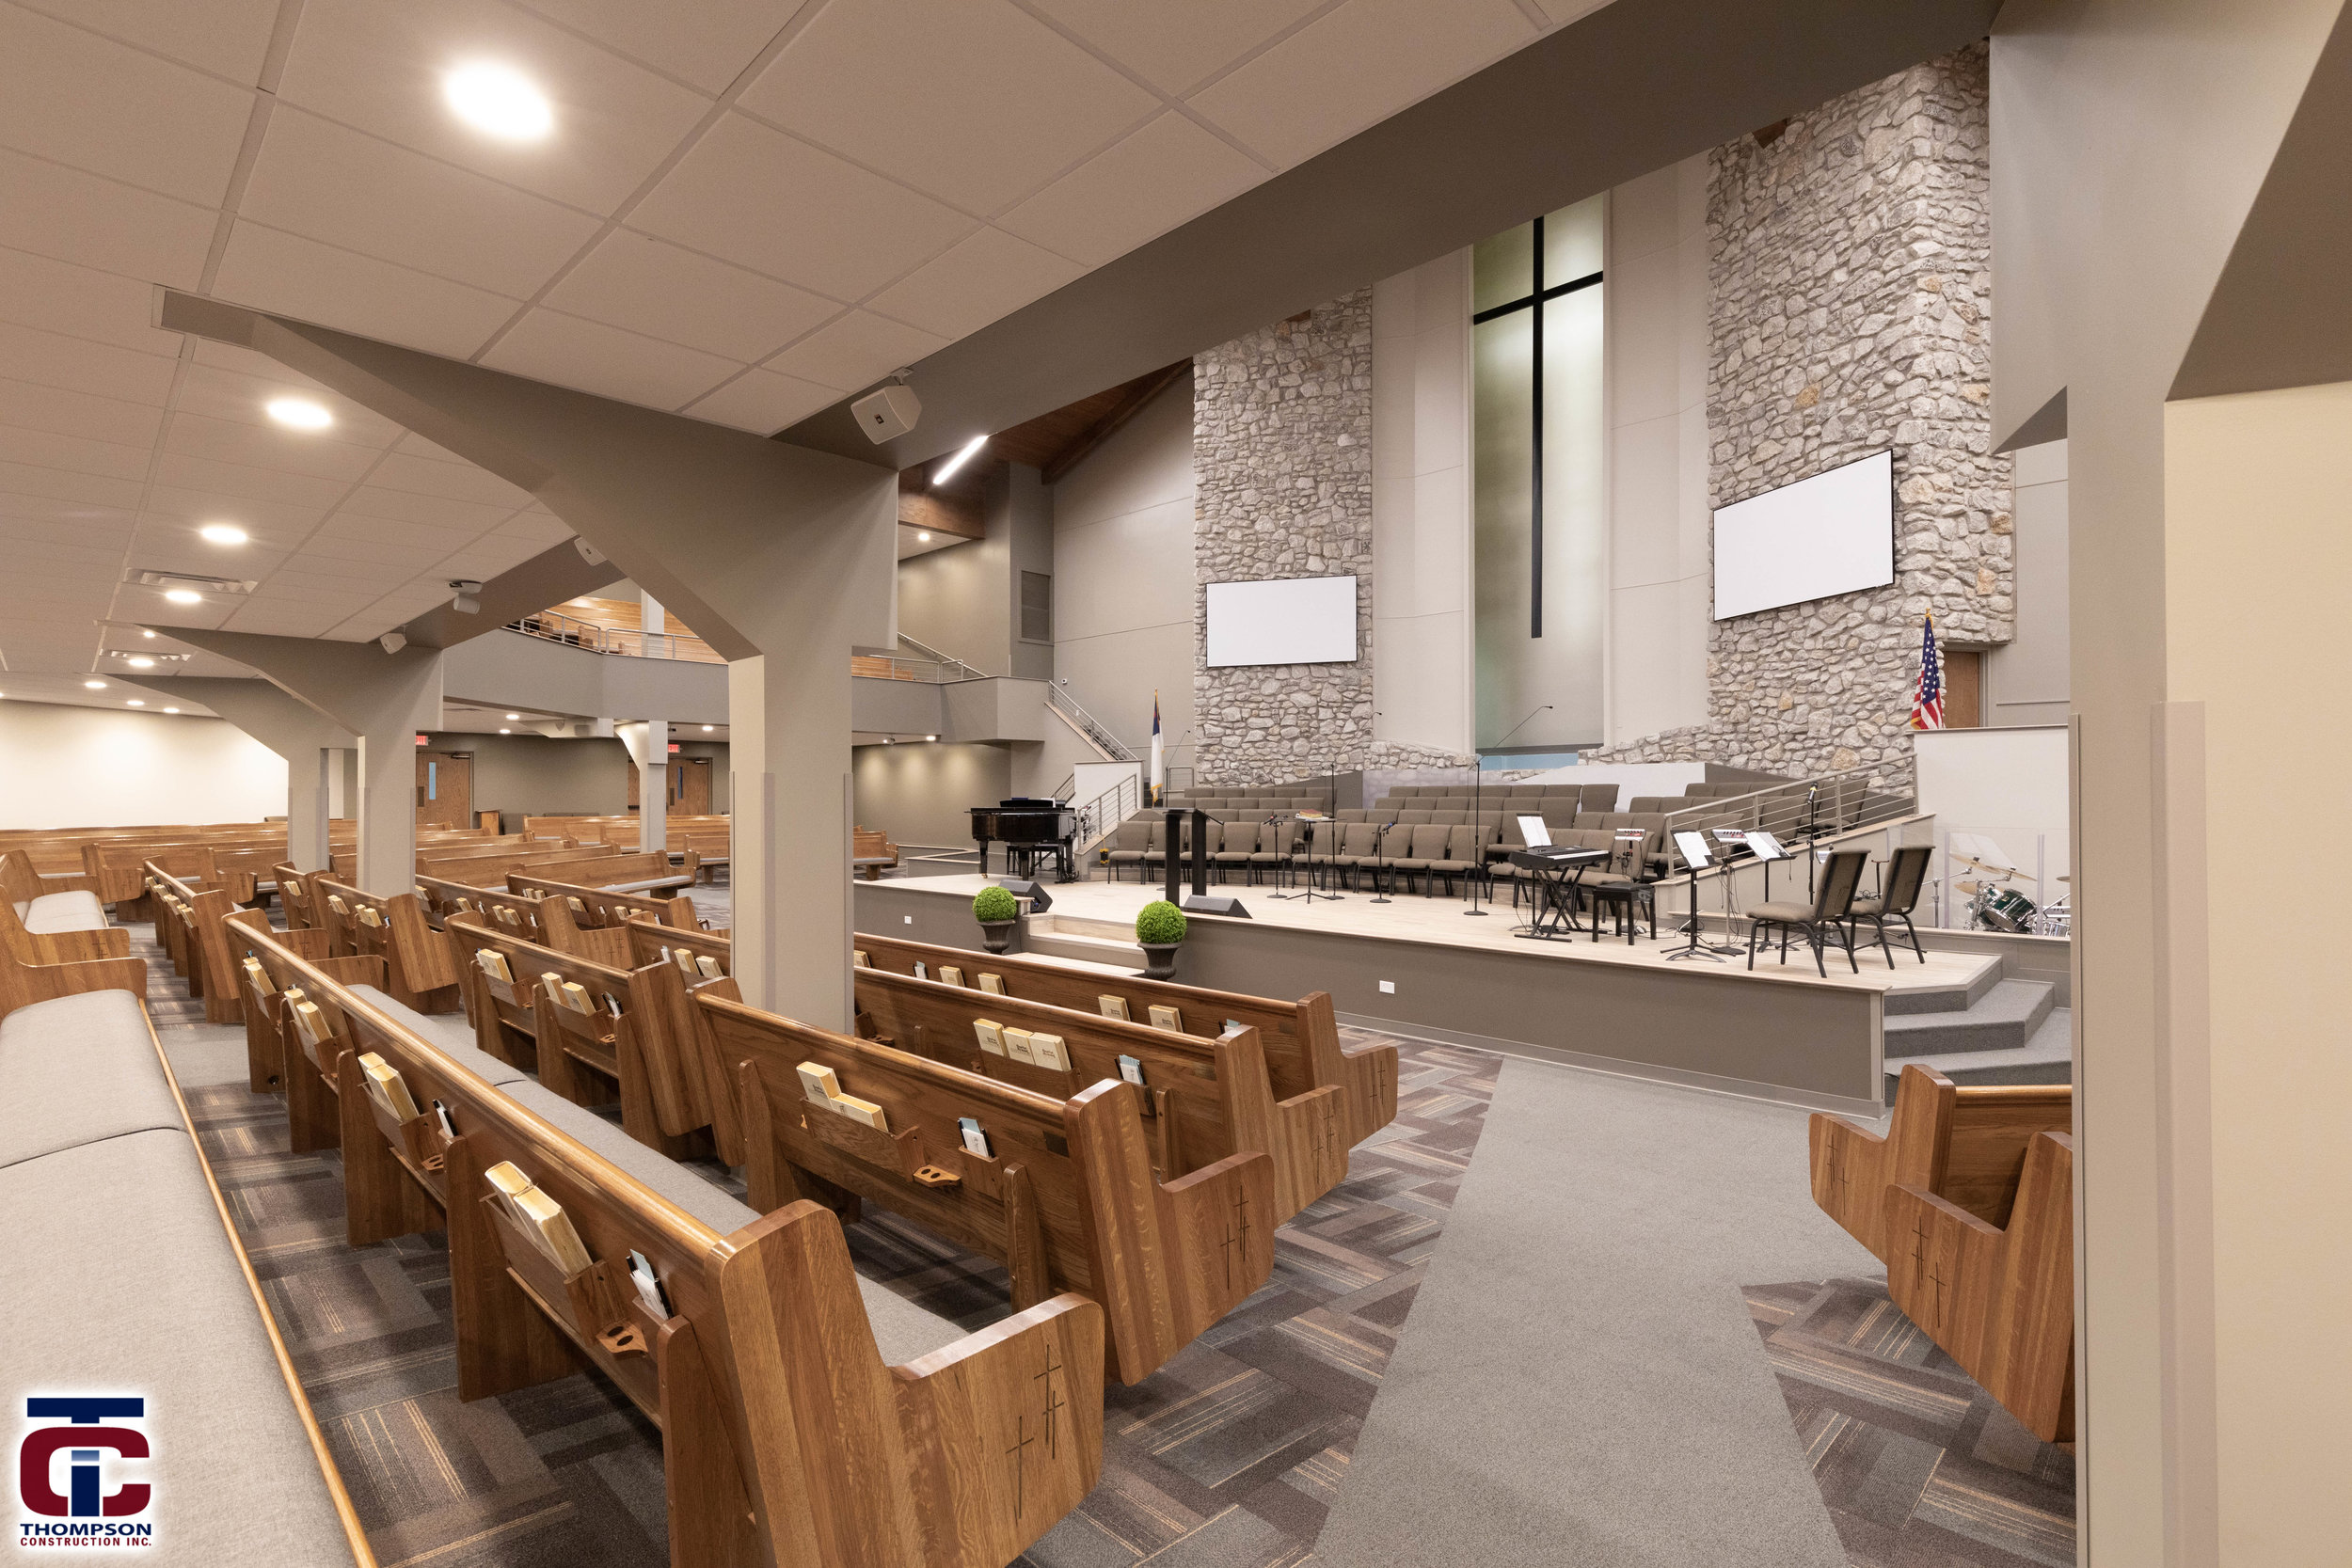 Olivet baptist church renovation -